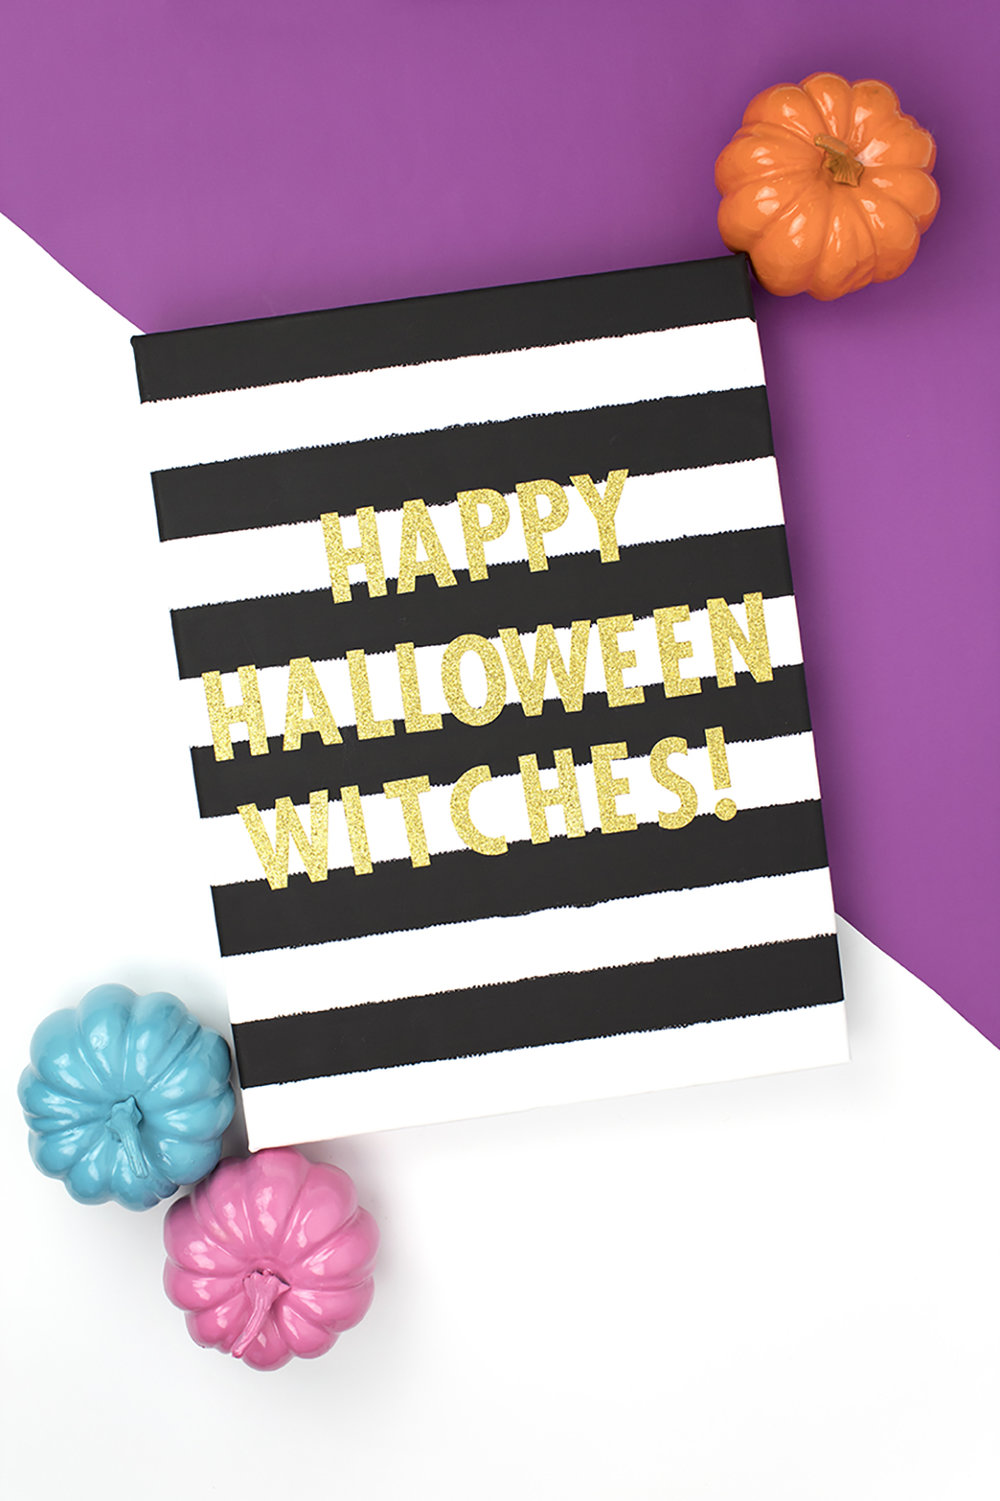 Looking for a slightly creepy, slightly cute way to decorate for Halloween? You've got to see this striped sign! Click for the full DIY.